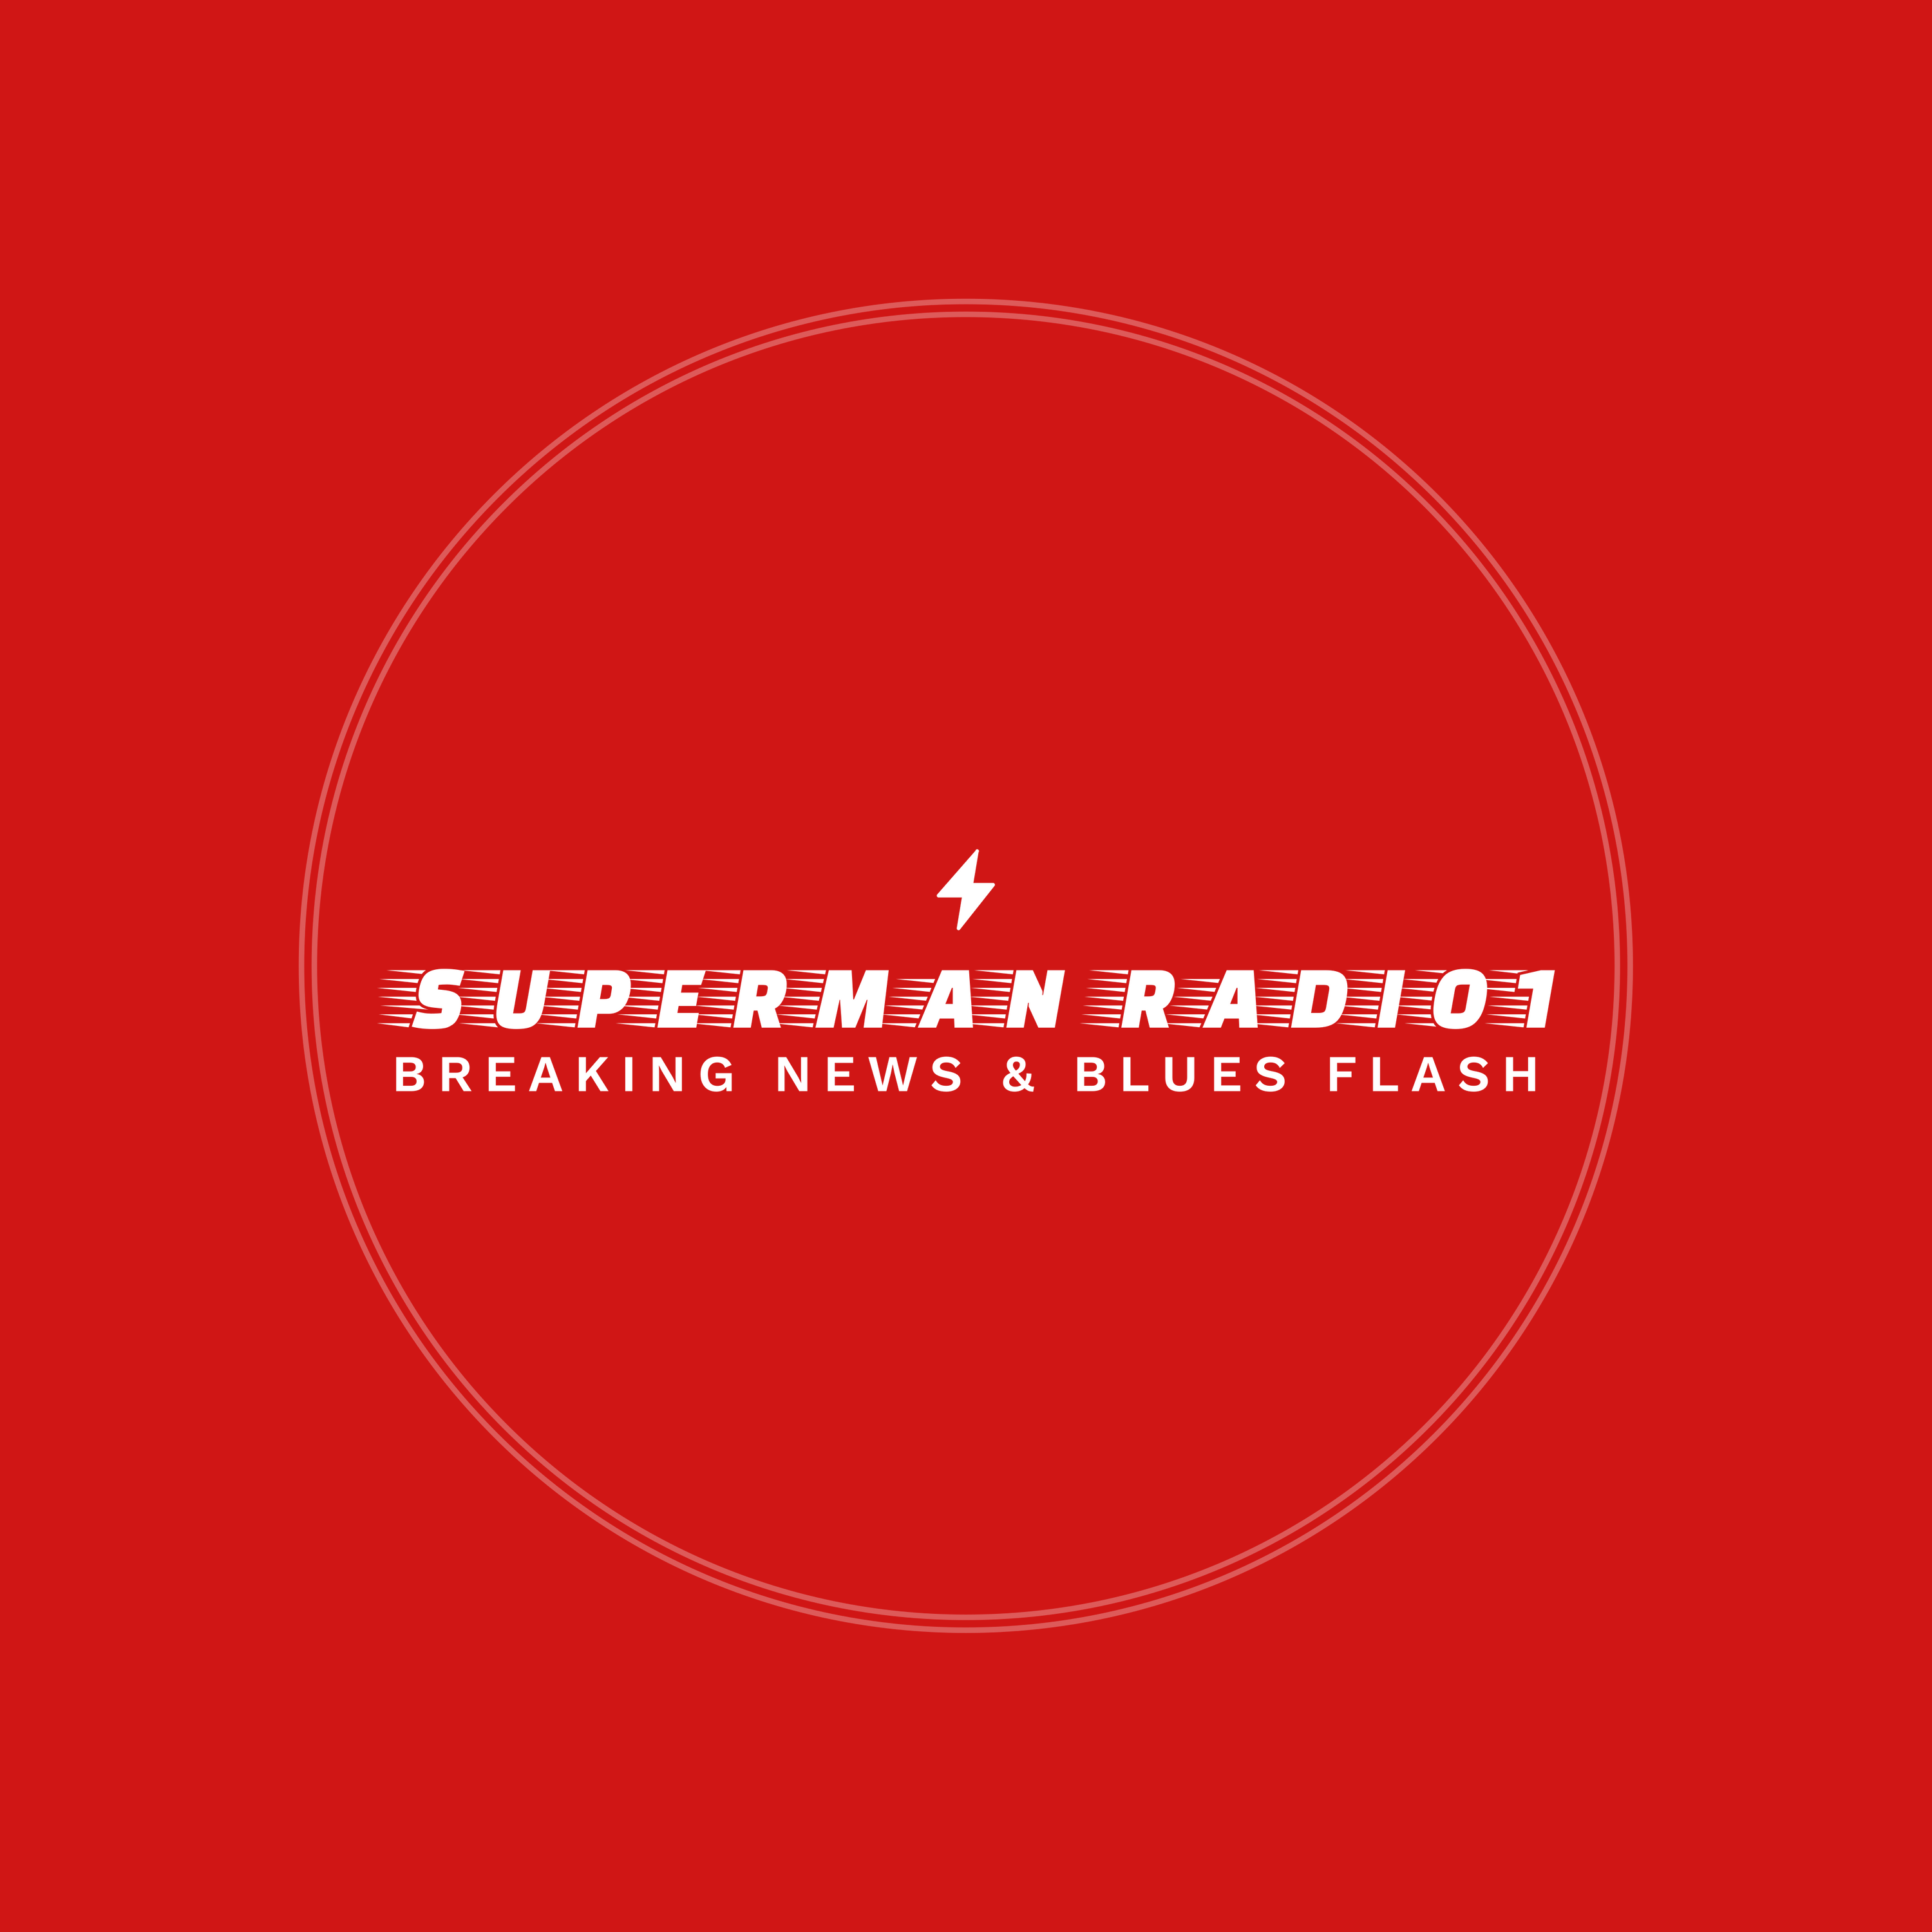 Superman radio1